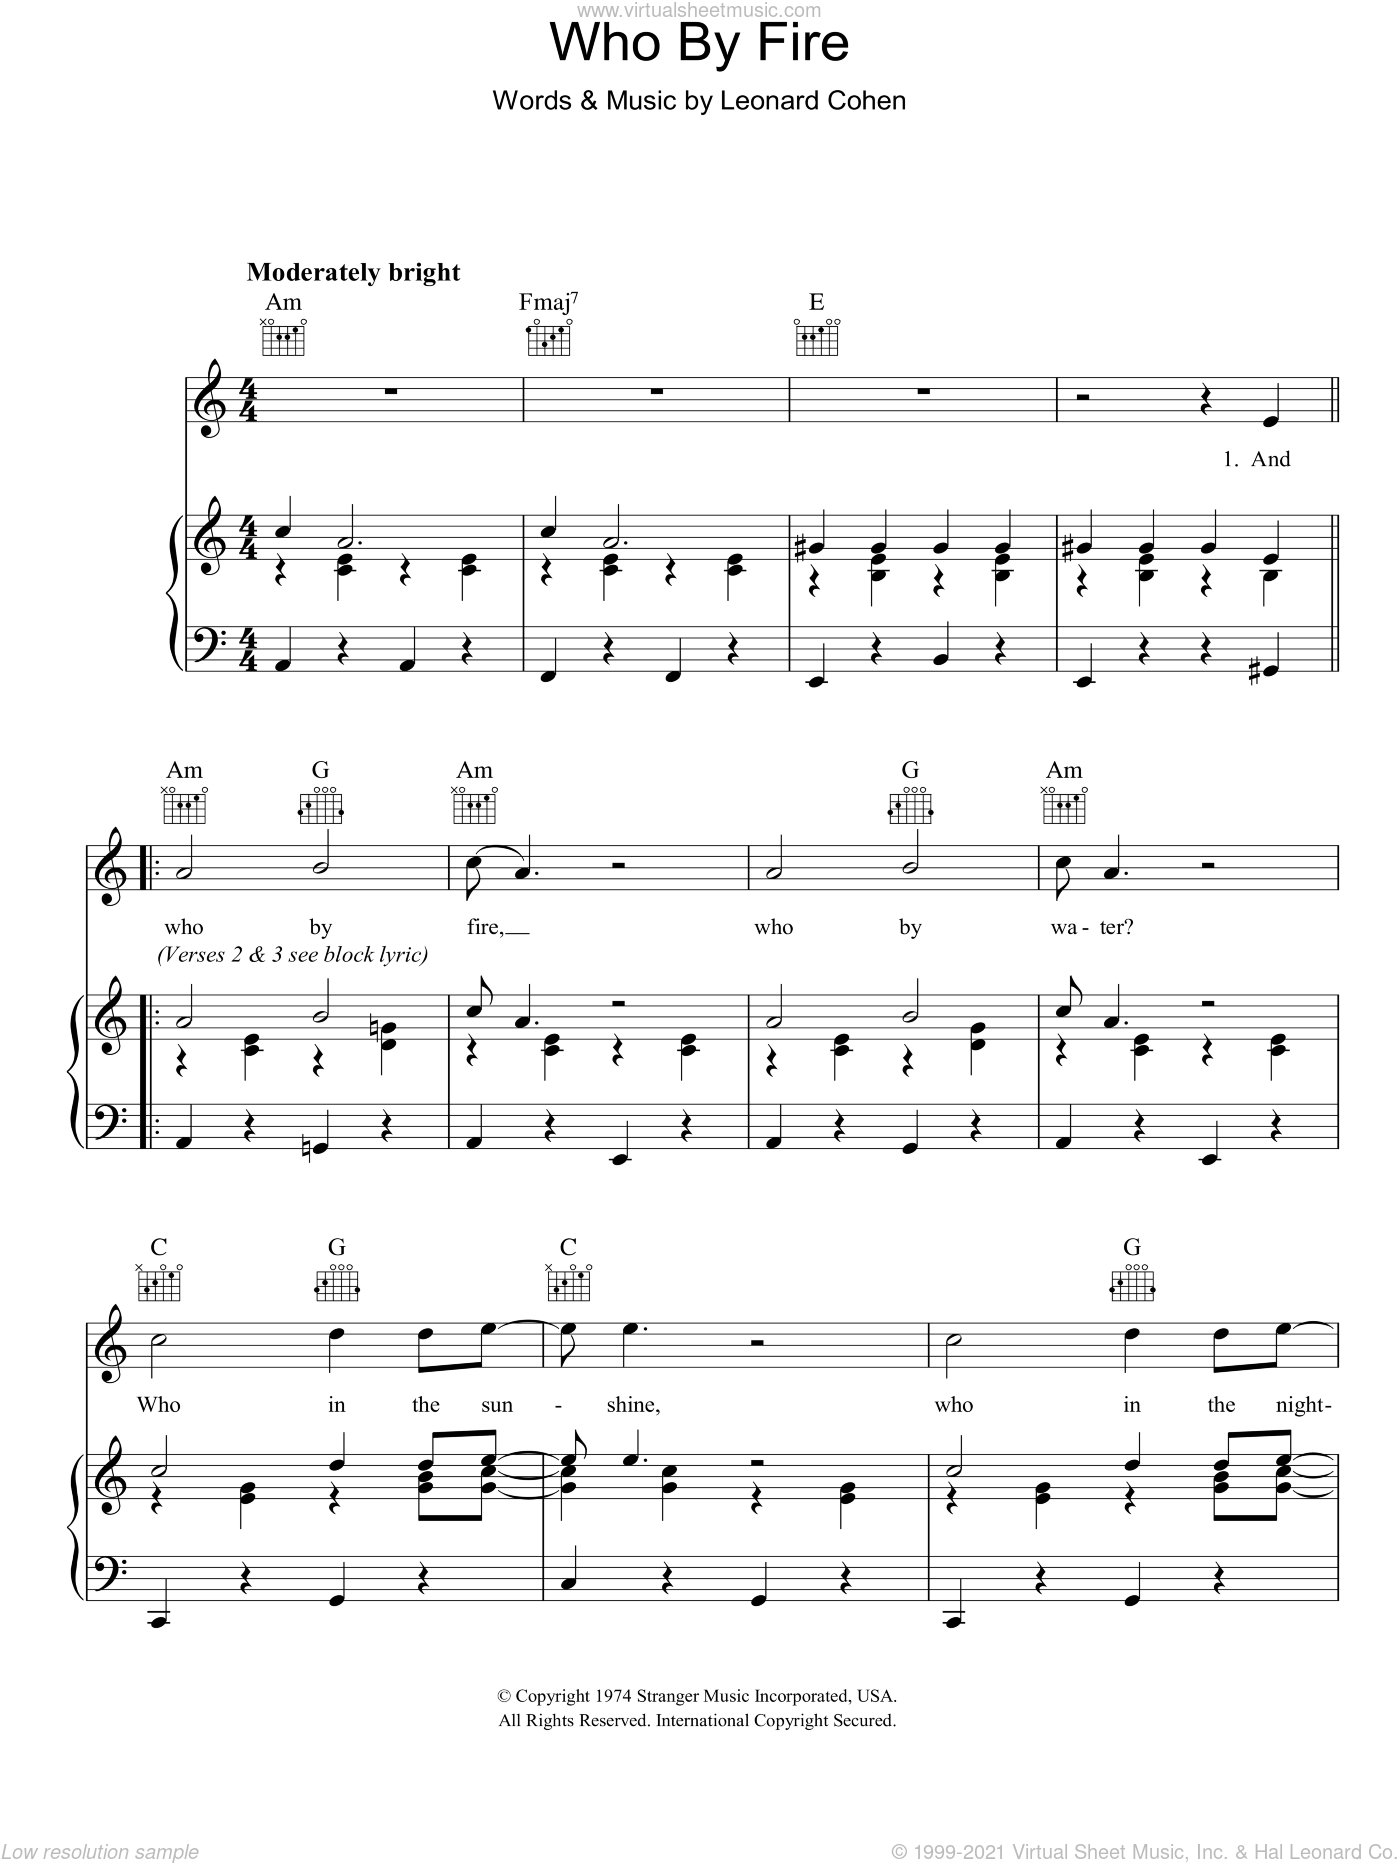 Who By Fire sheet music for voice, piano or guitar by Leonard Cohen. Score Image Preview.